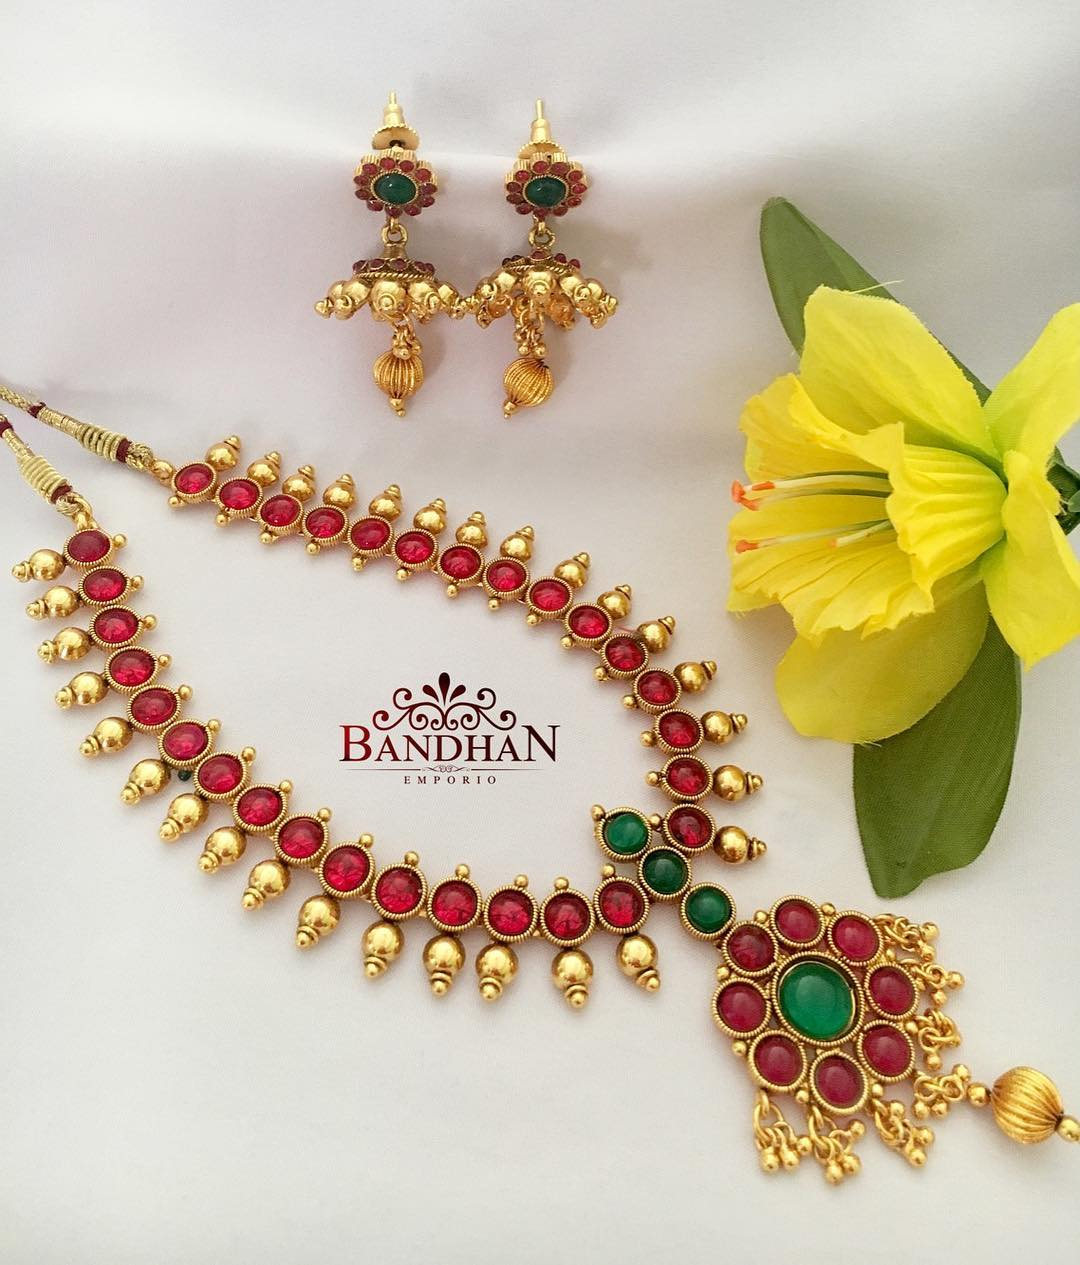 Irresistible Ruby necklace From Bandhan